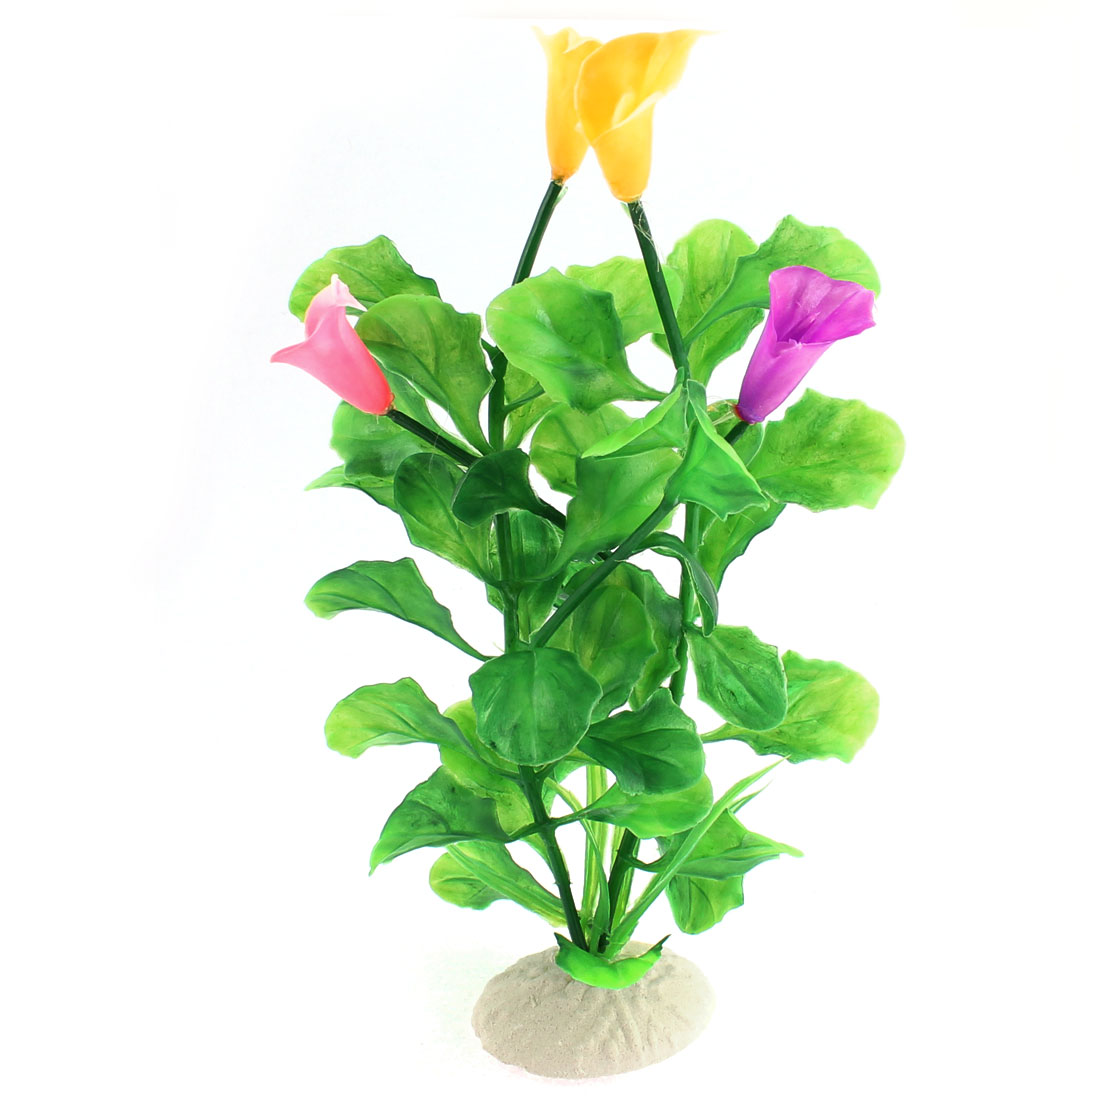 Artificial Plastic Underwater Plant Flower Grass for Fish Tank Aquarium